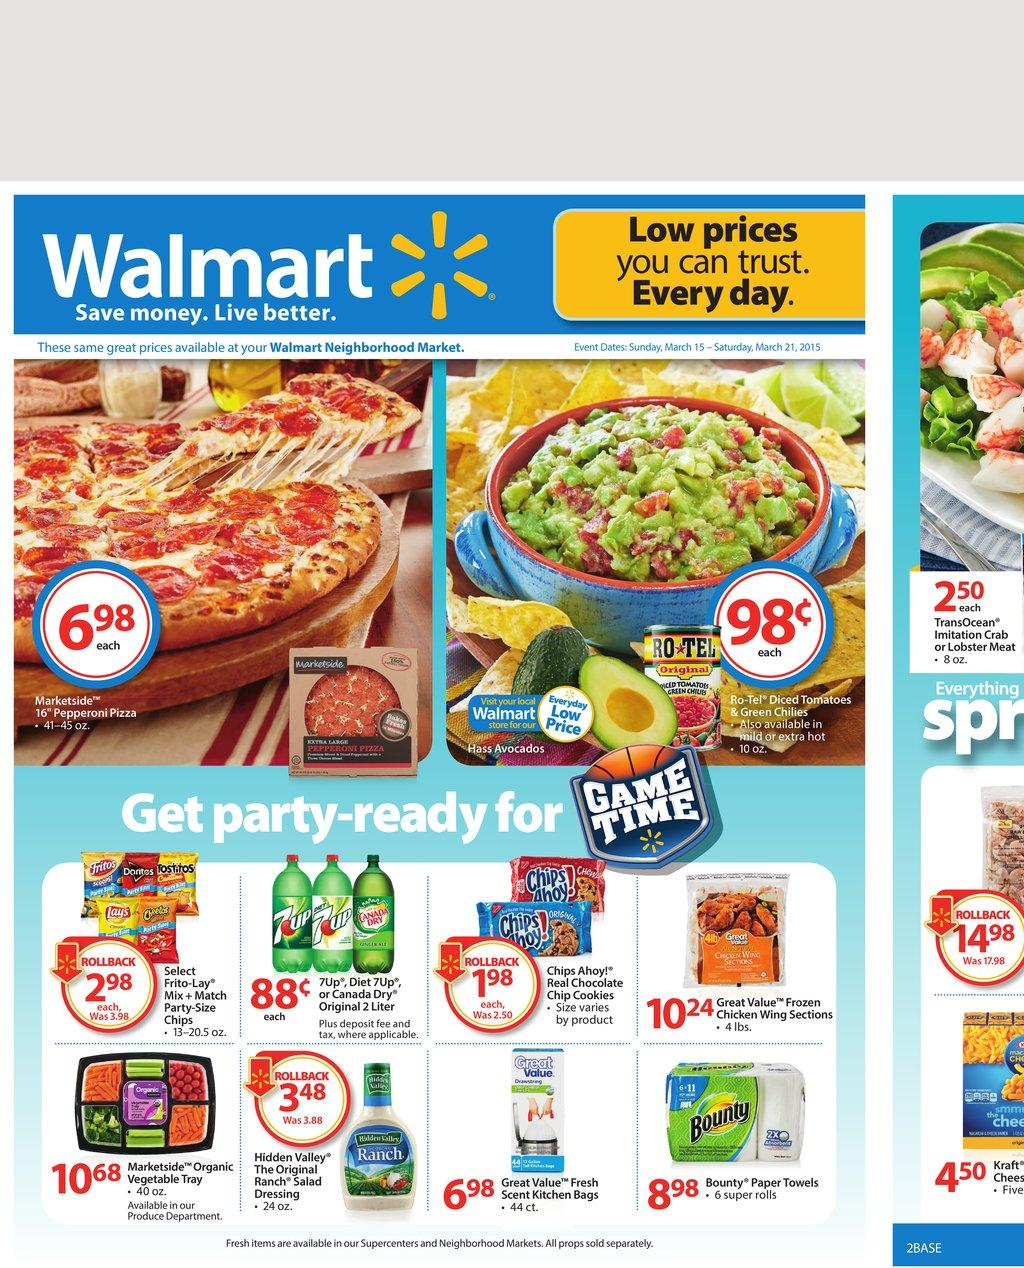 Walmart Spring Meals and Entertainment Products March 2015